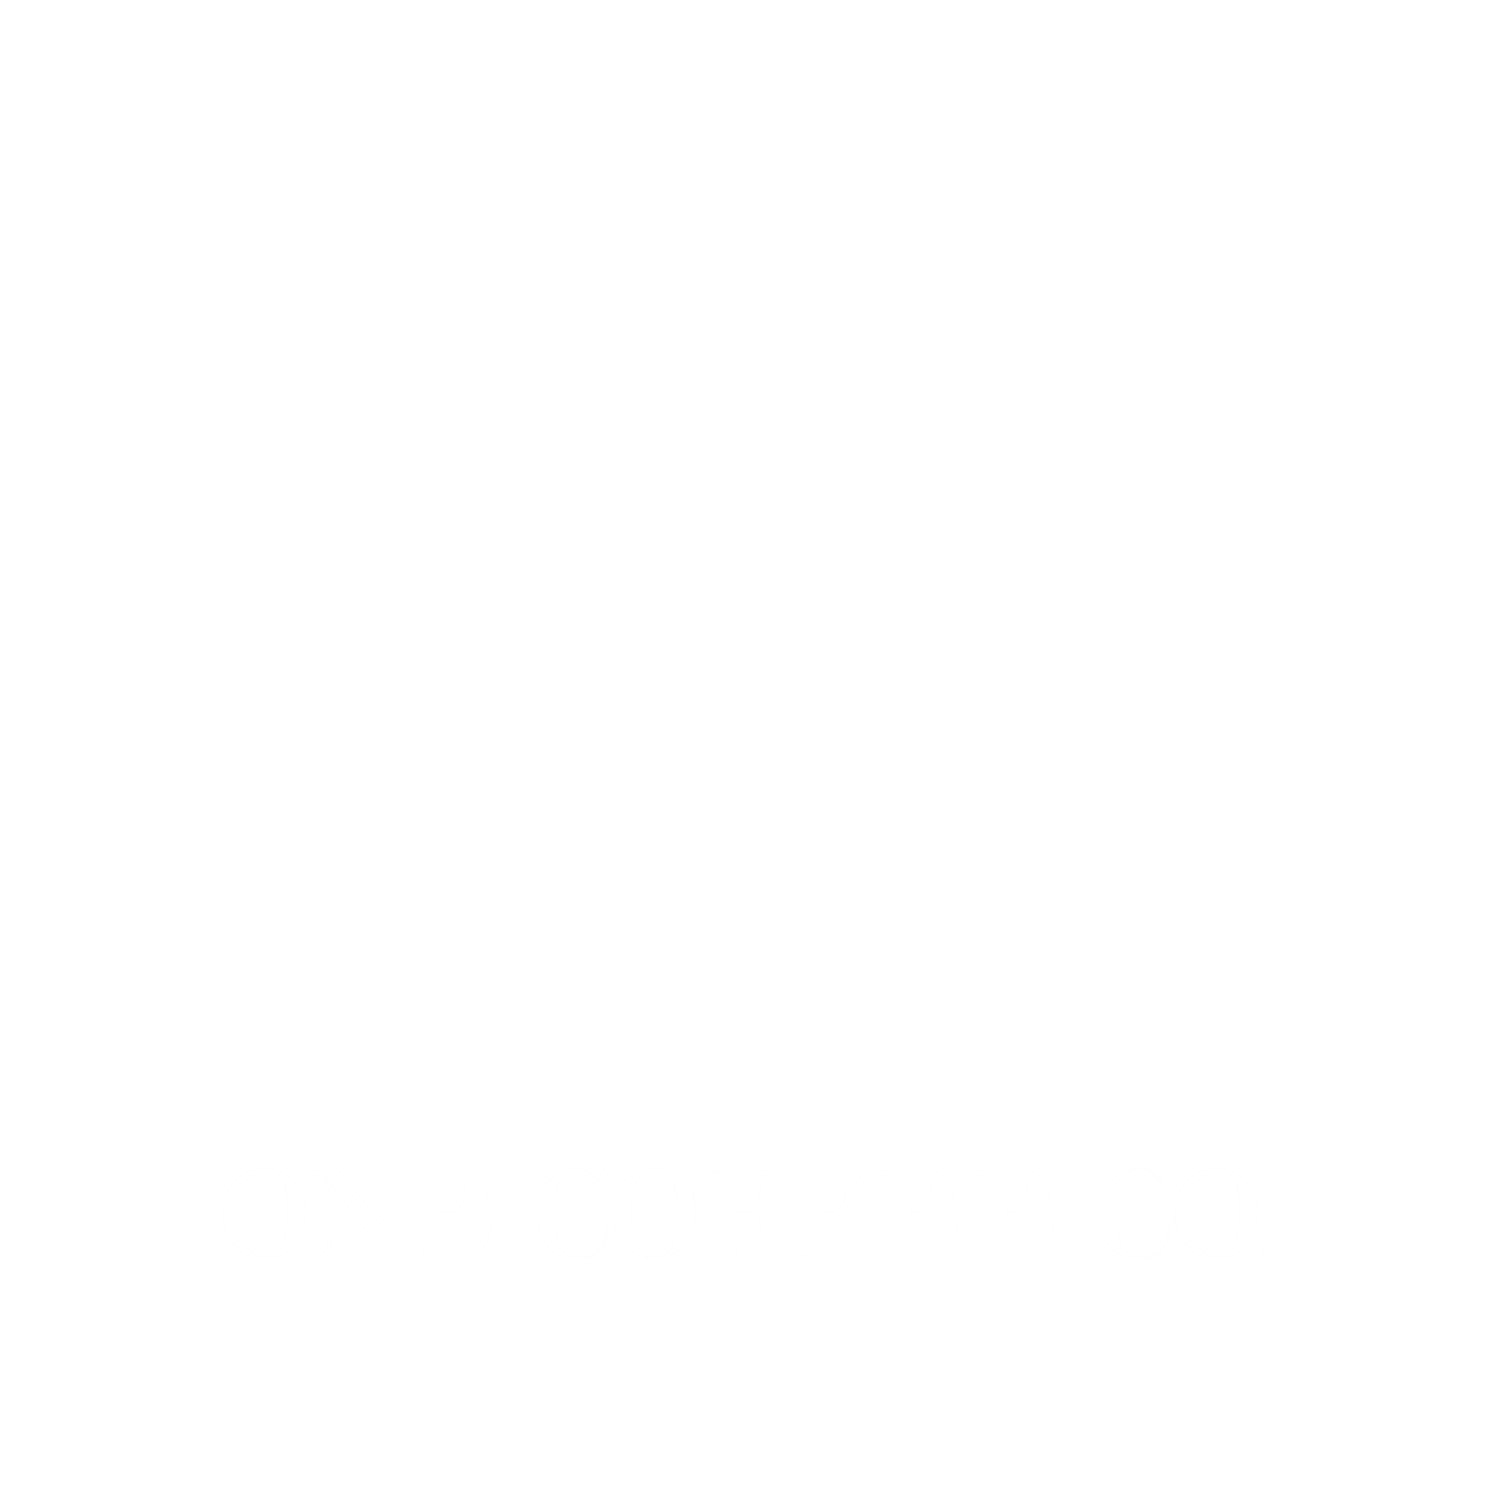 One Coffee Co.